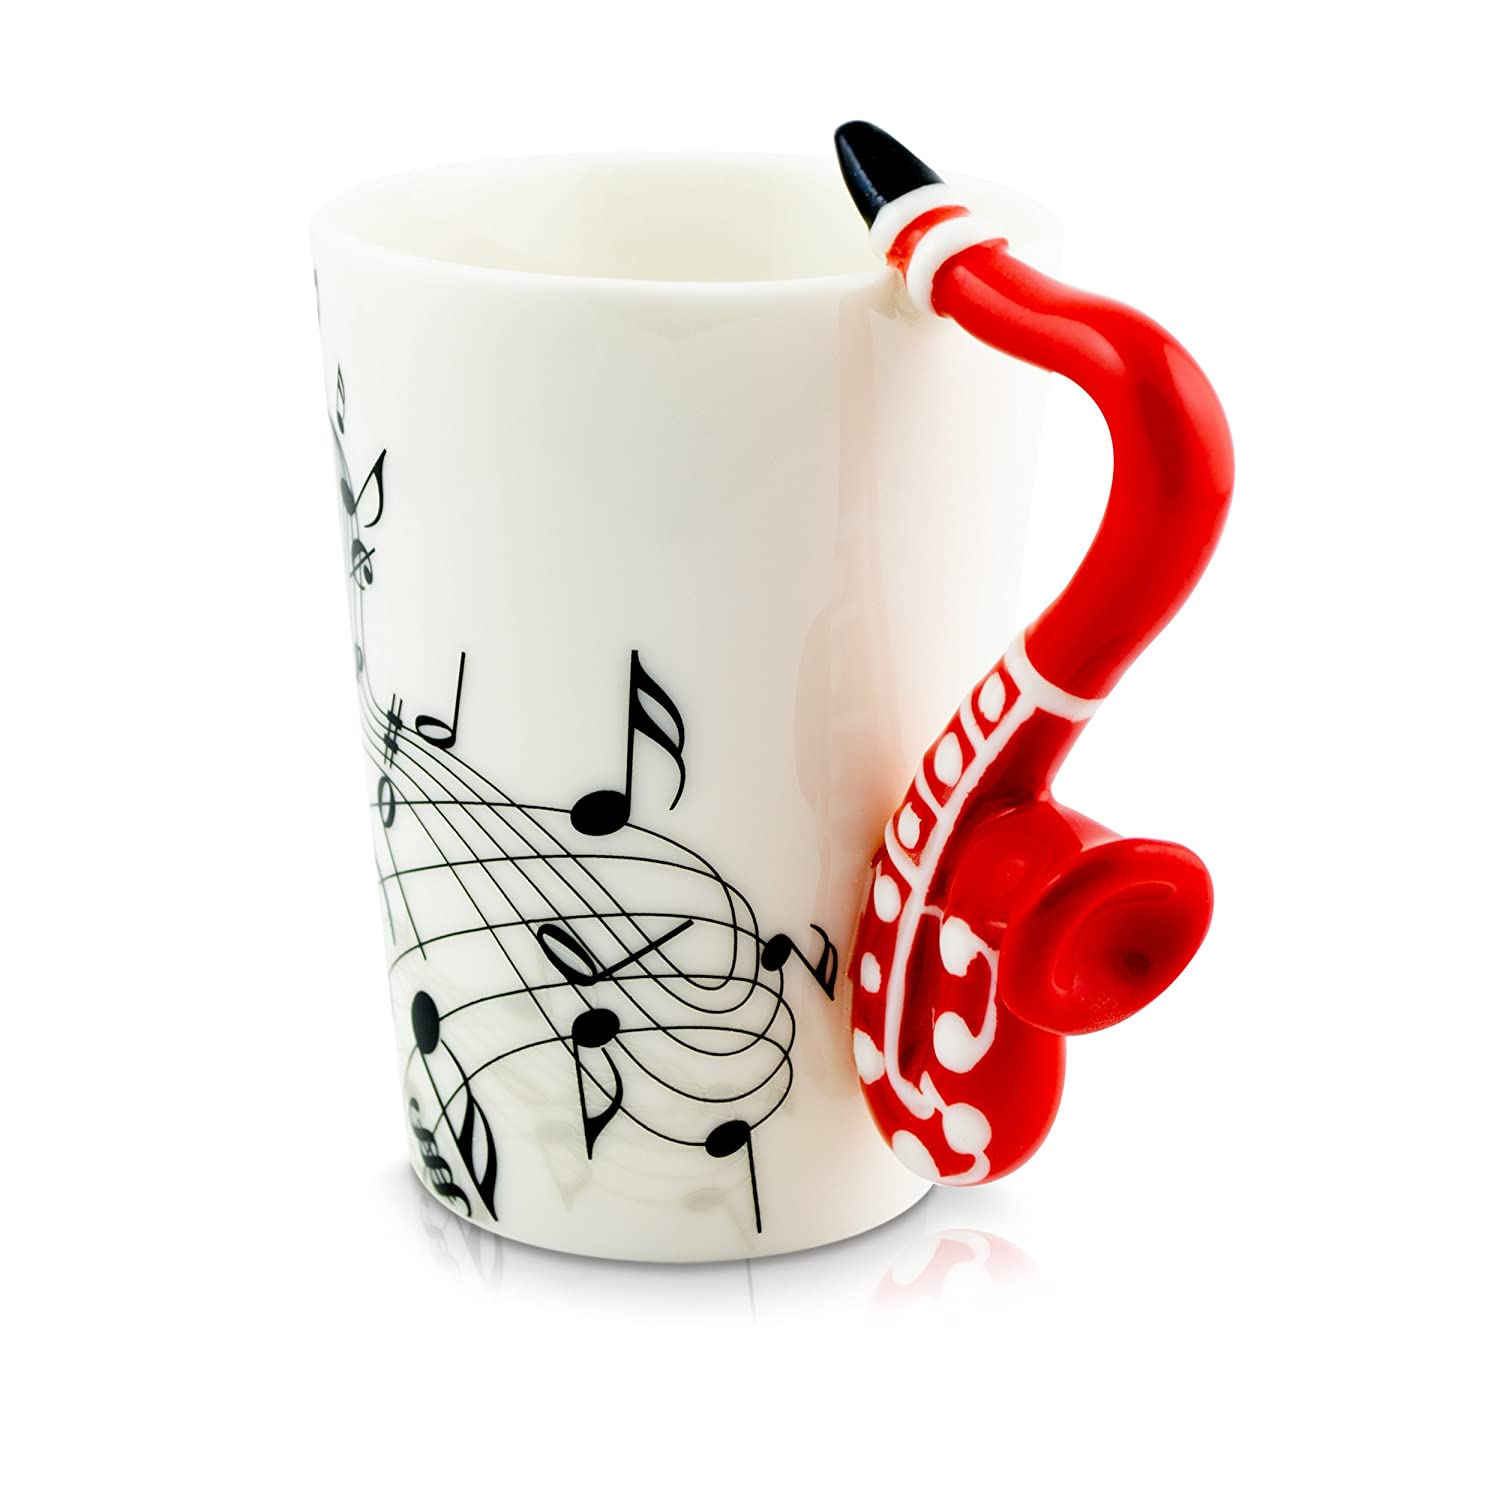 Sonorous Cup holder, what dreams Cup holder in a dream to see 26